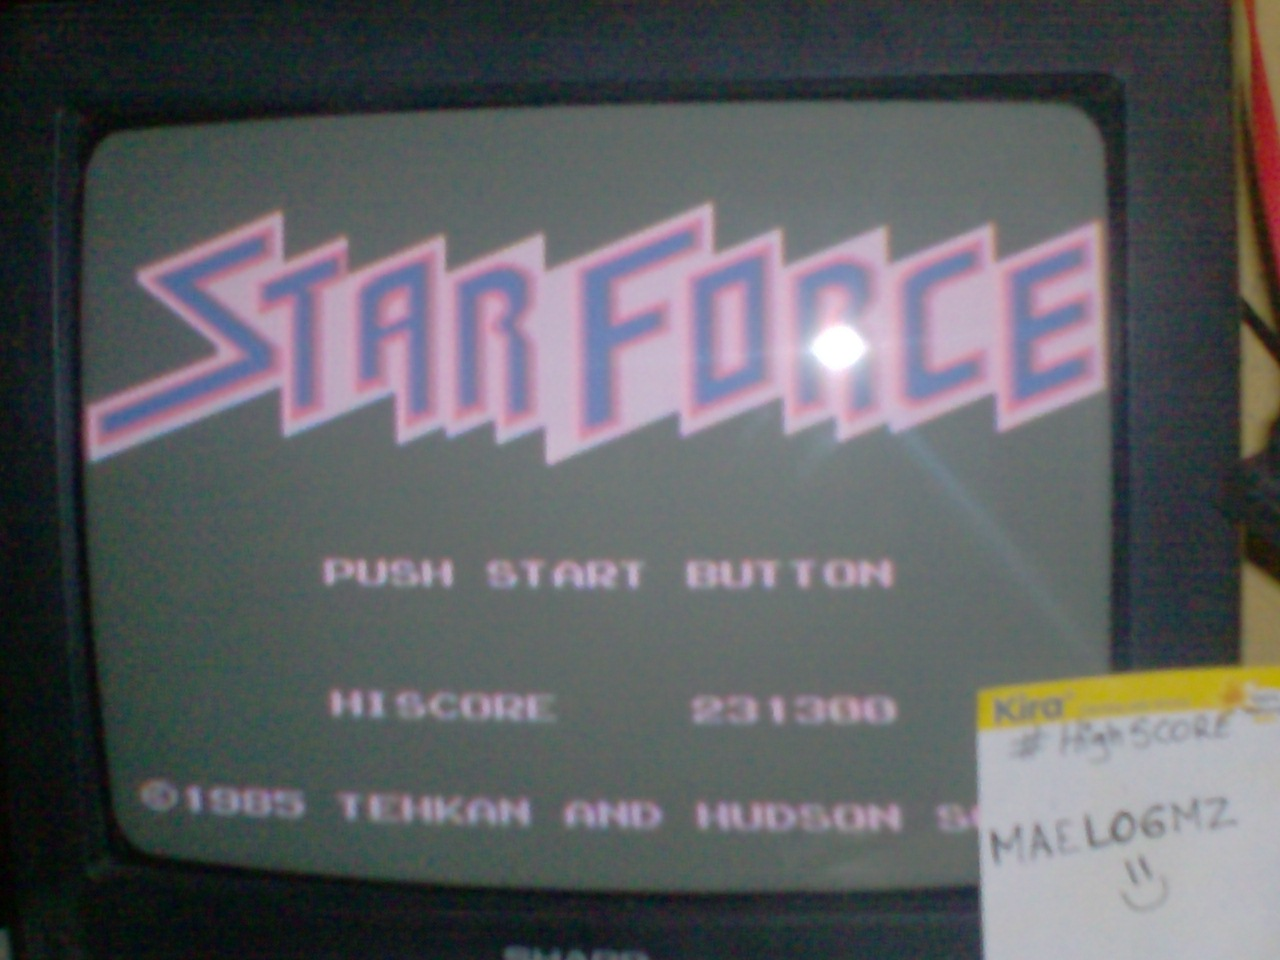 Star Force [Famicom Version] 231,300 points